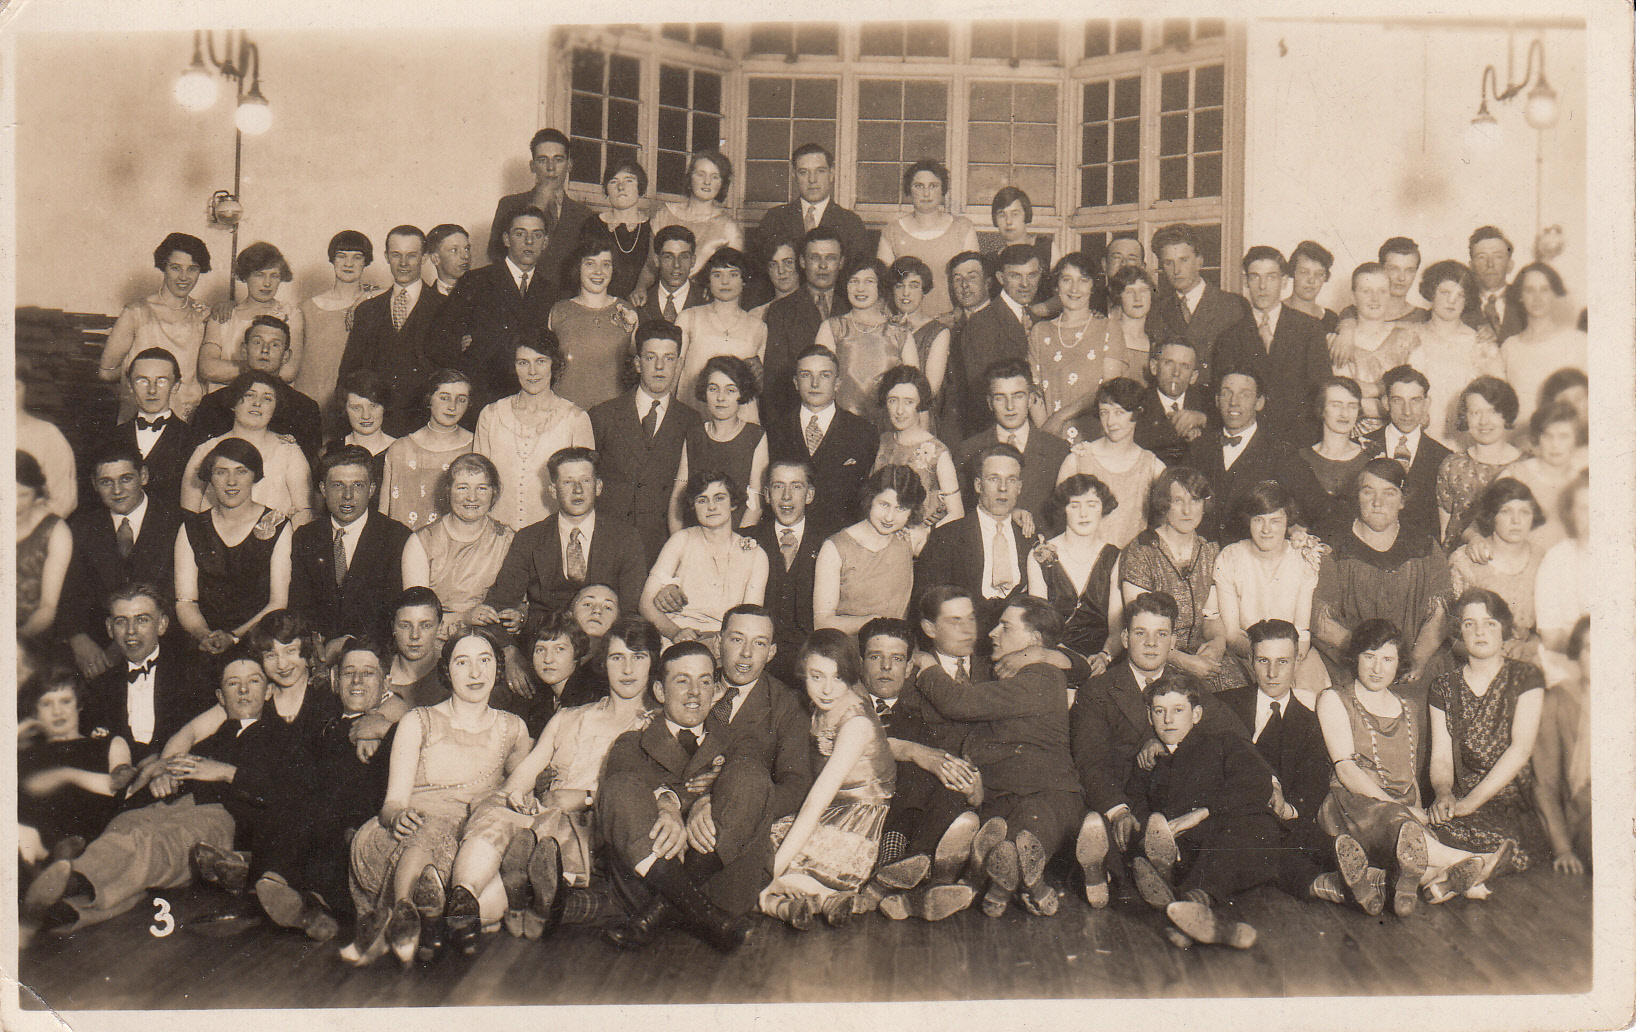 1930s dance in Hall